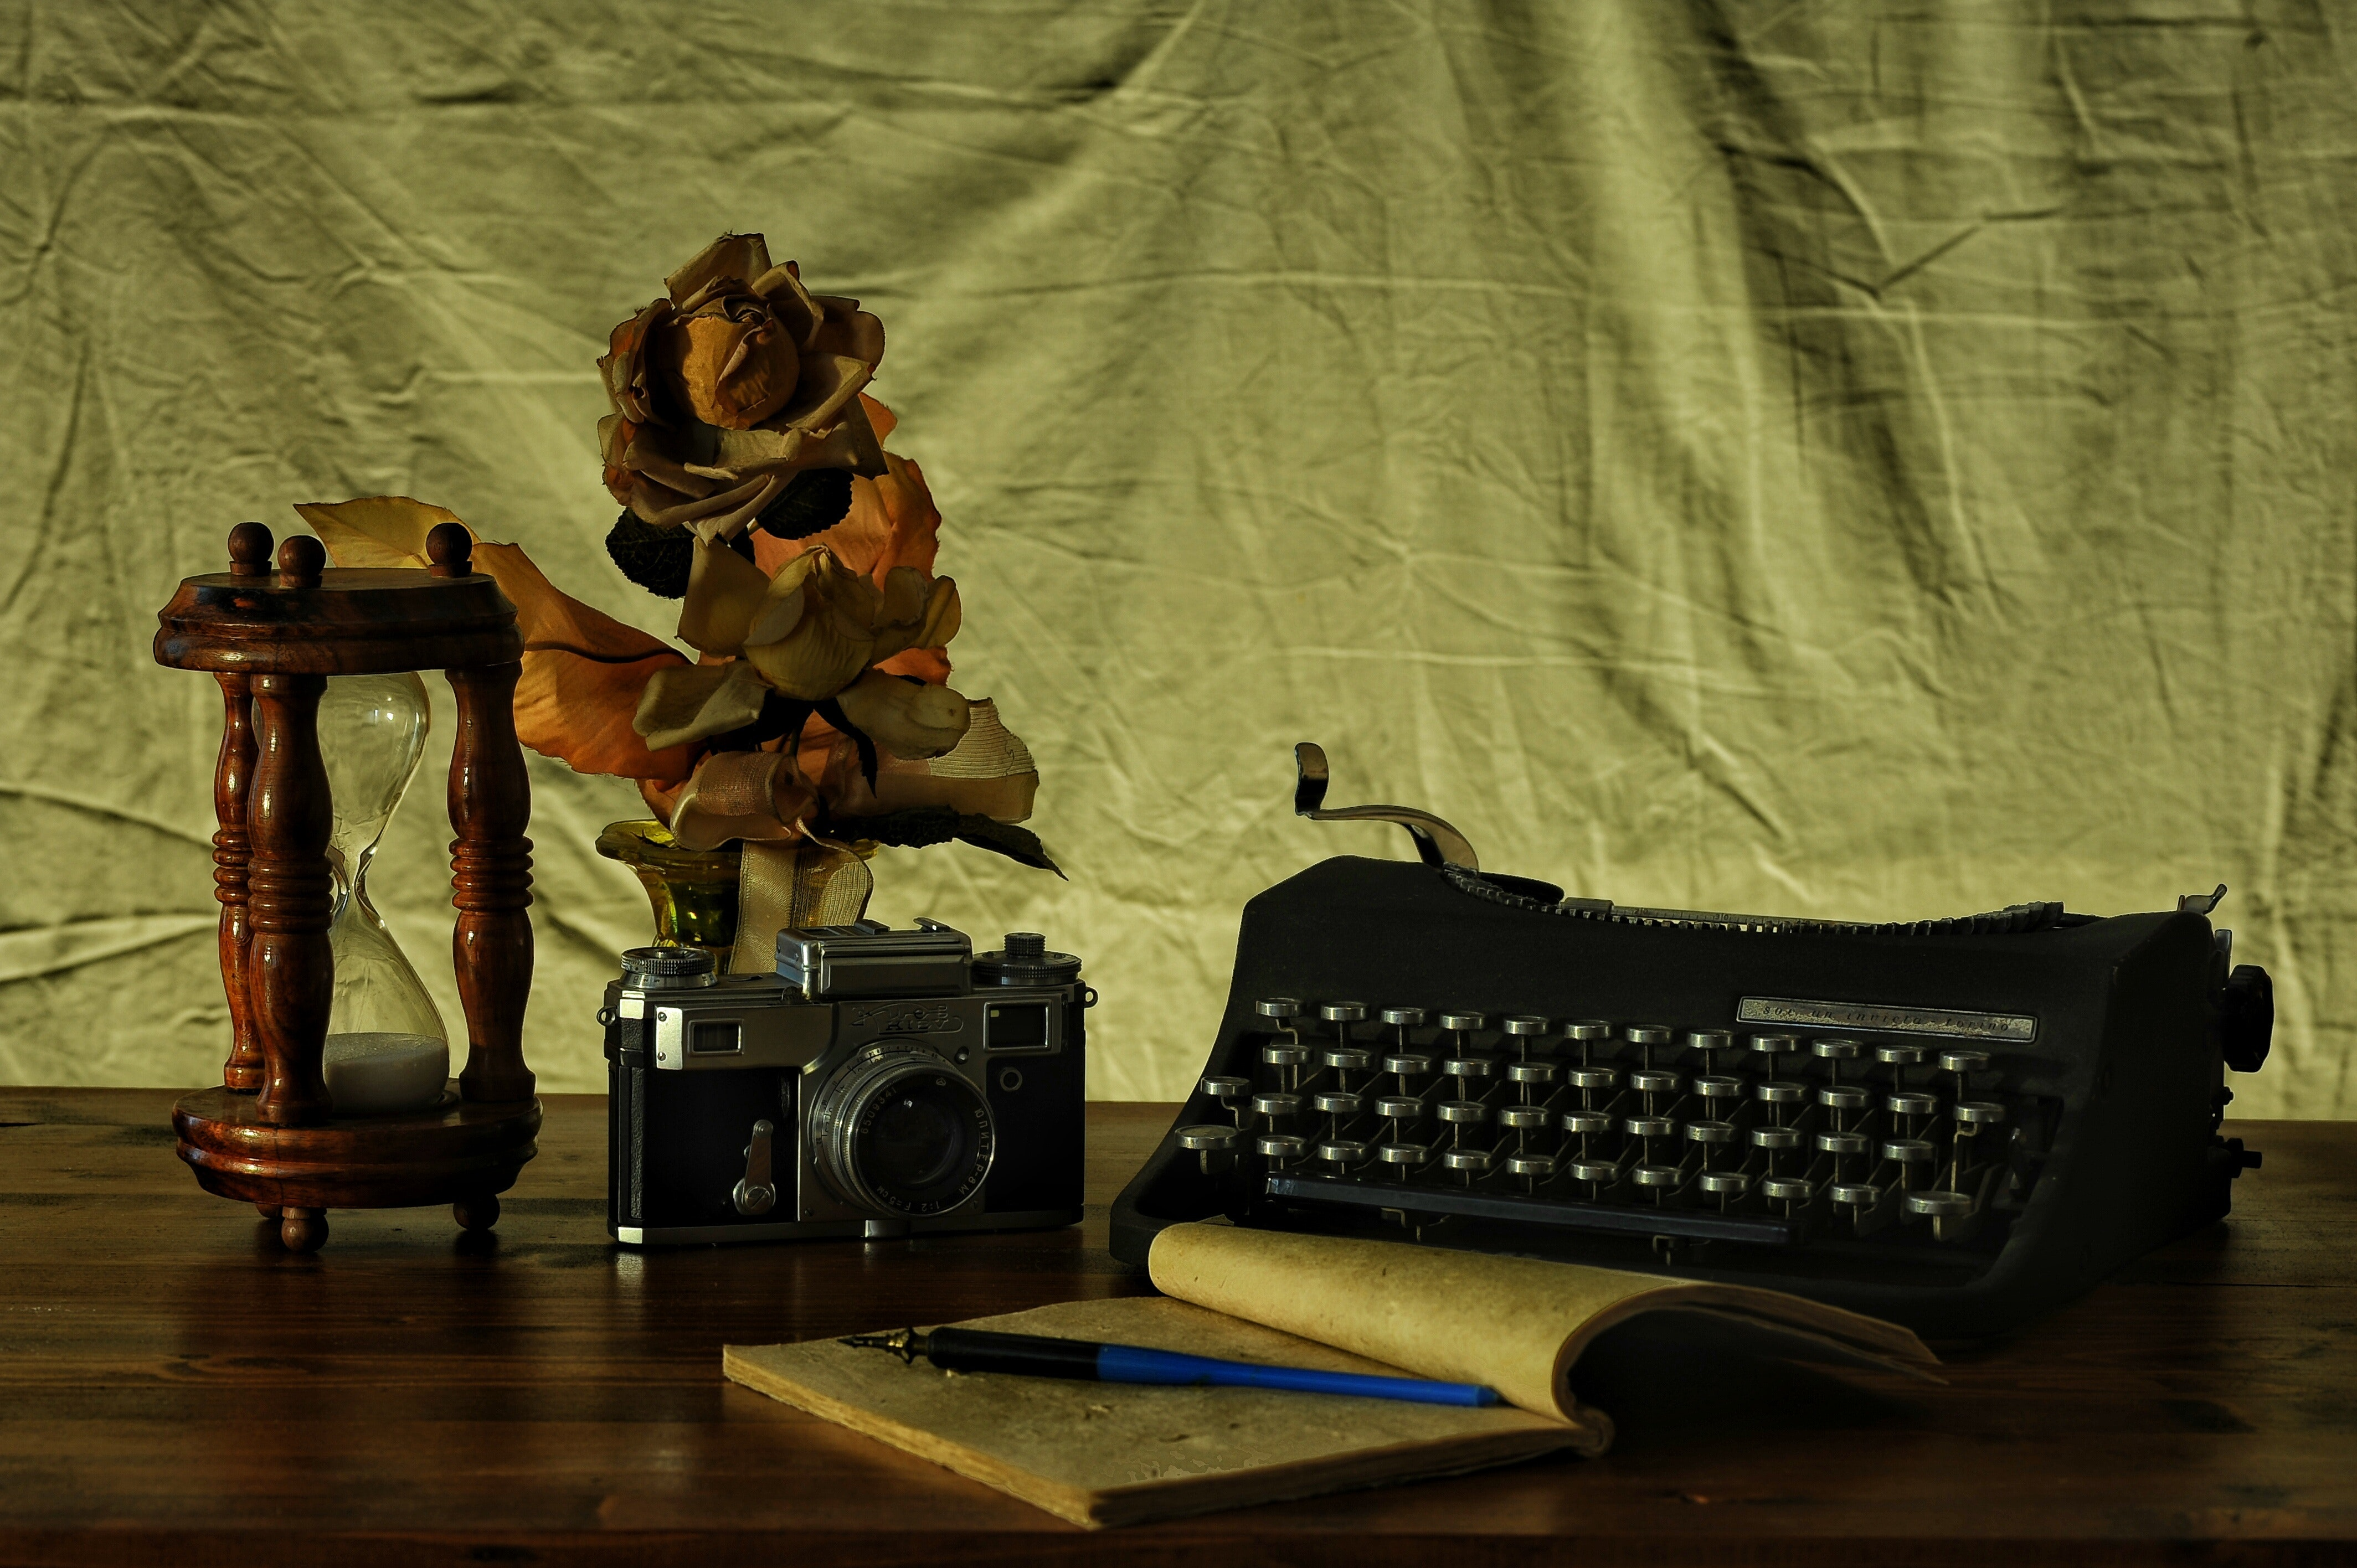 Brown Notebook in Between of a Type Writer and Gray and Black Camera, Adult, Music, Wood, Vintage, HQ Photo